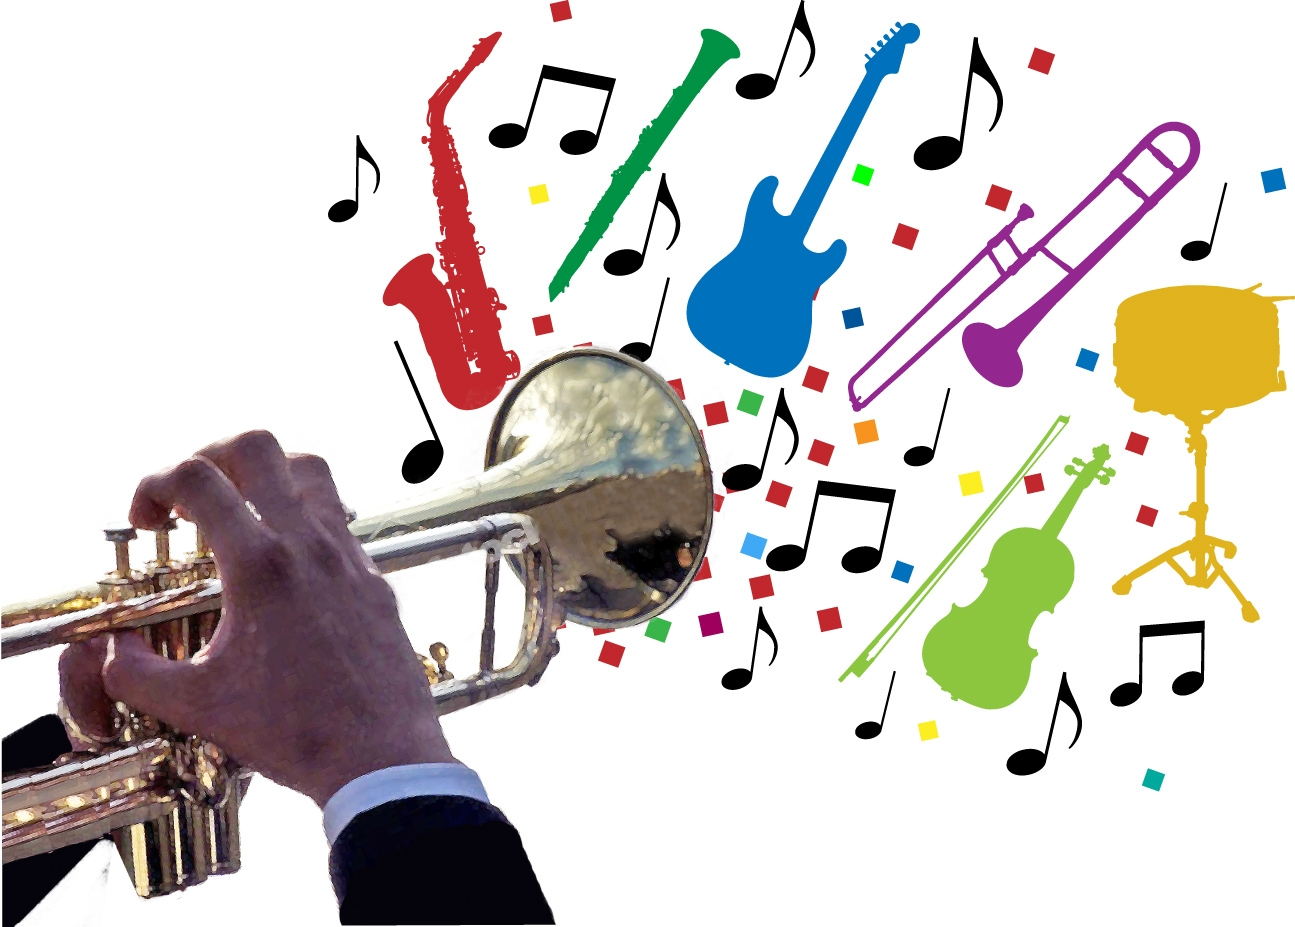 School jazz band clipart image #34914.